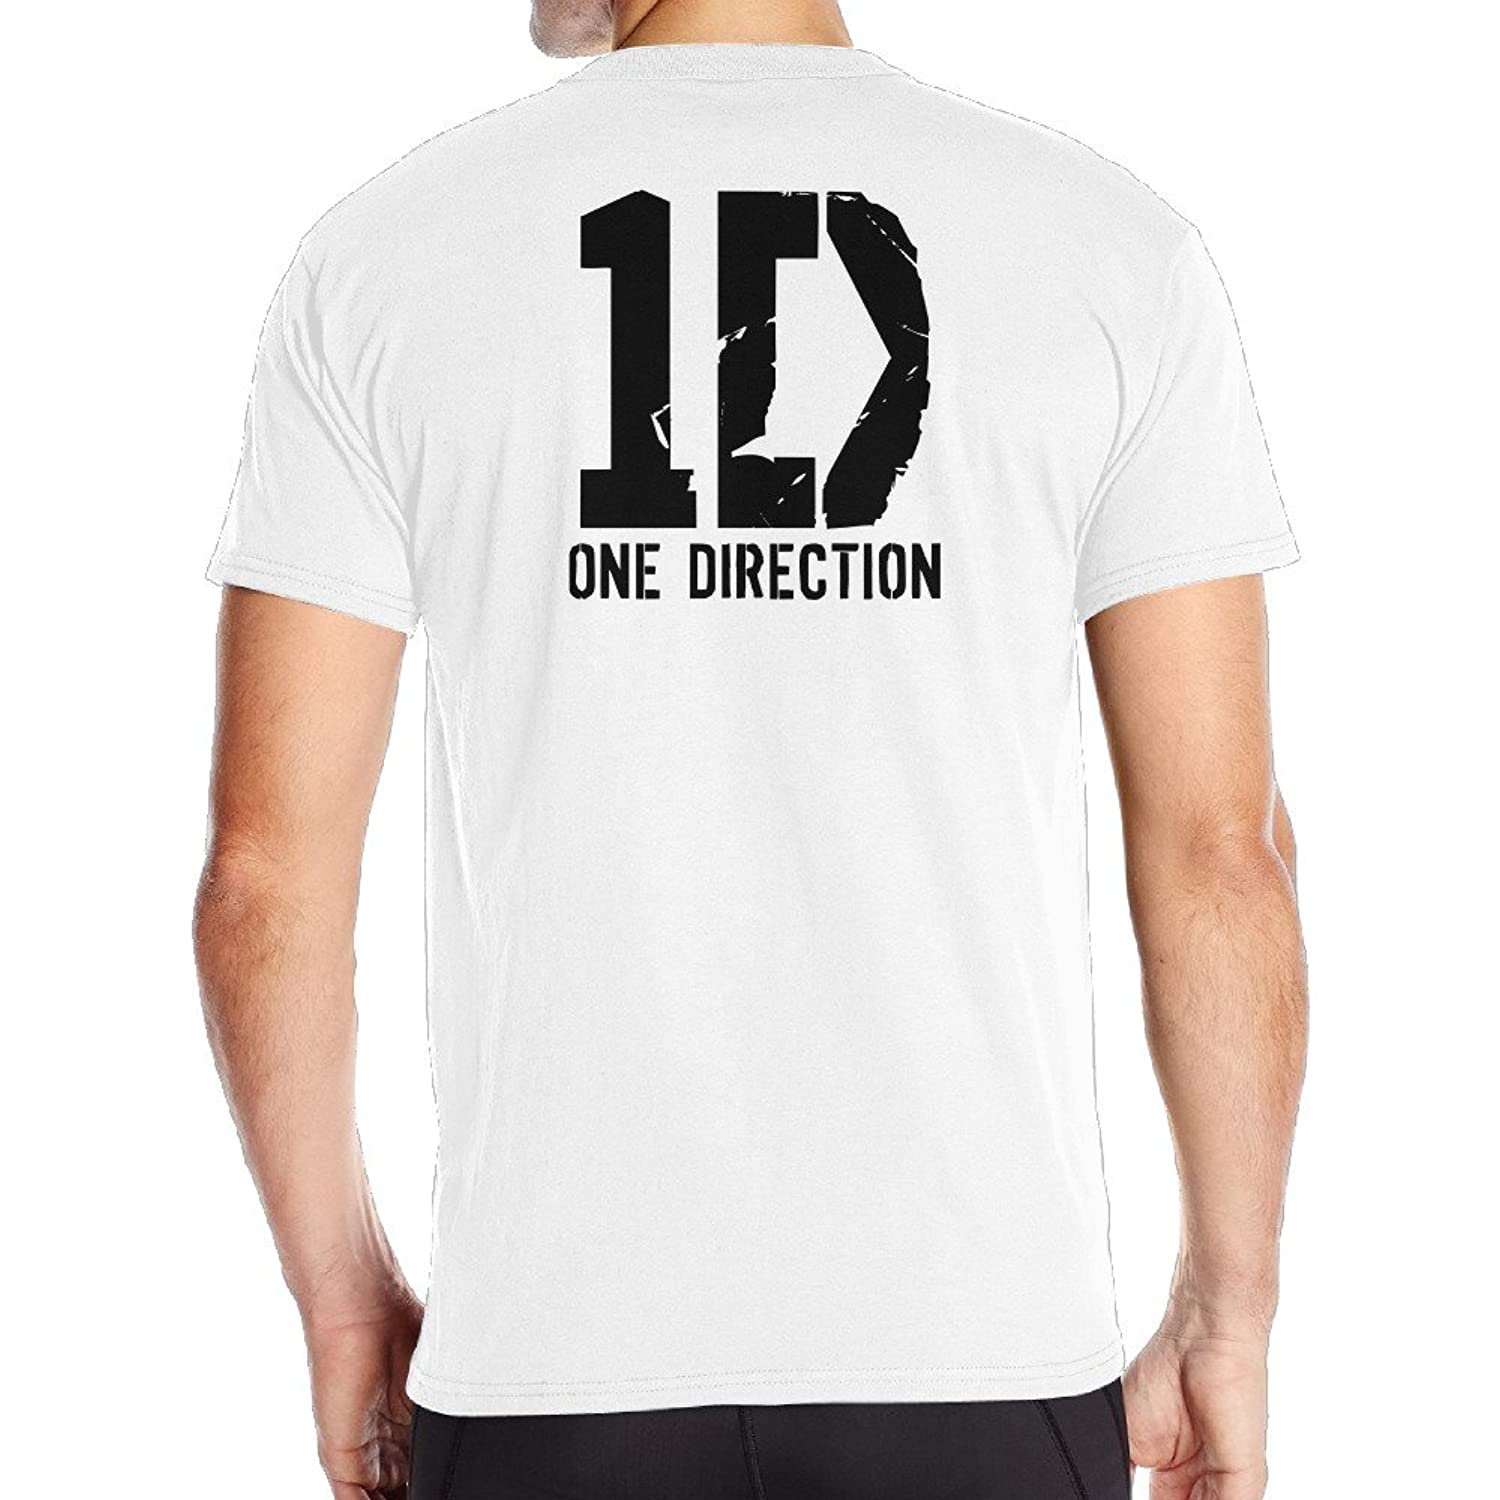 Design t shirt one direction - We Committed To Providing Each And Every Customer With The Ultimate Positive Buying Experience